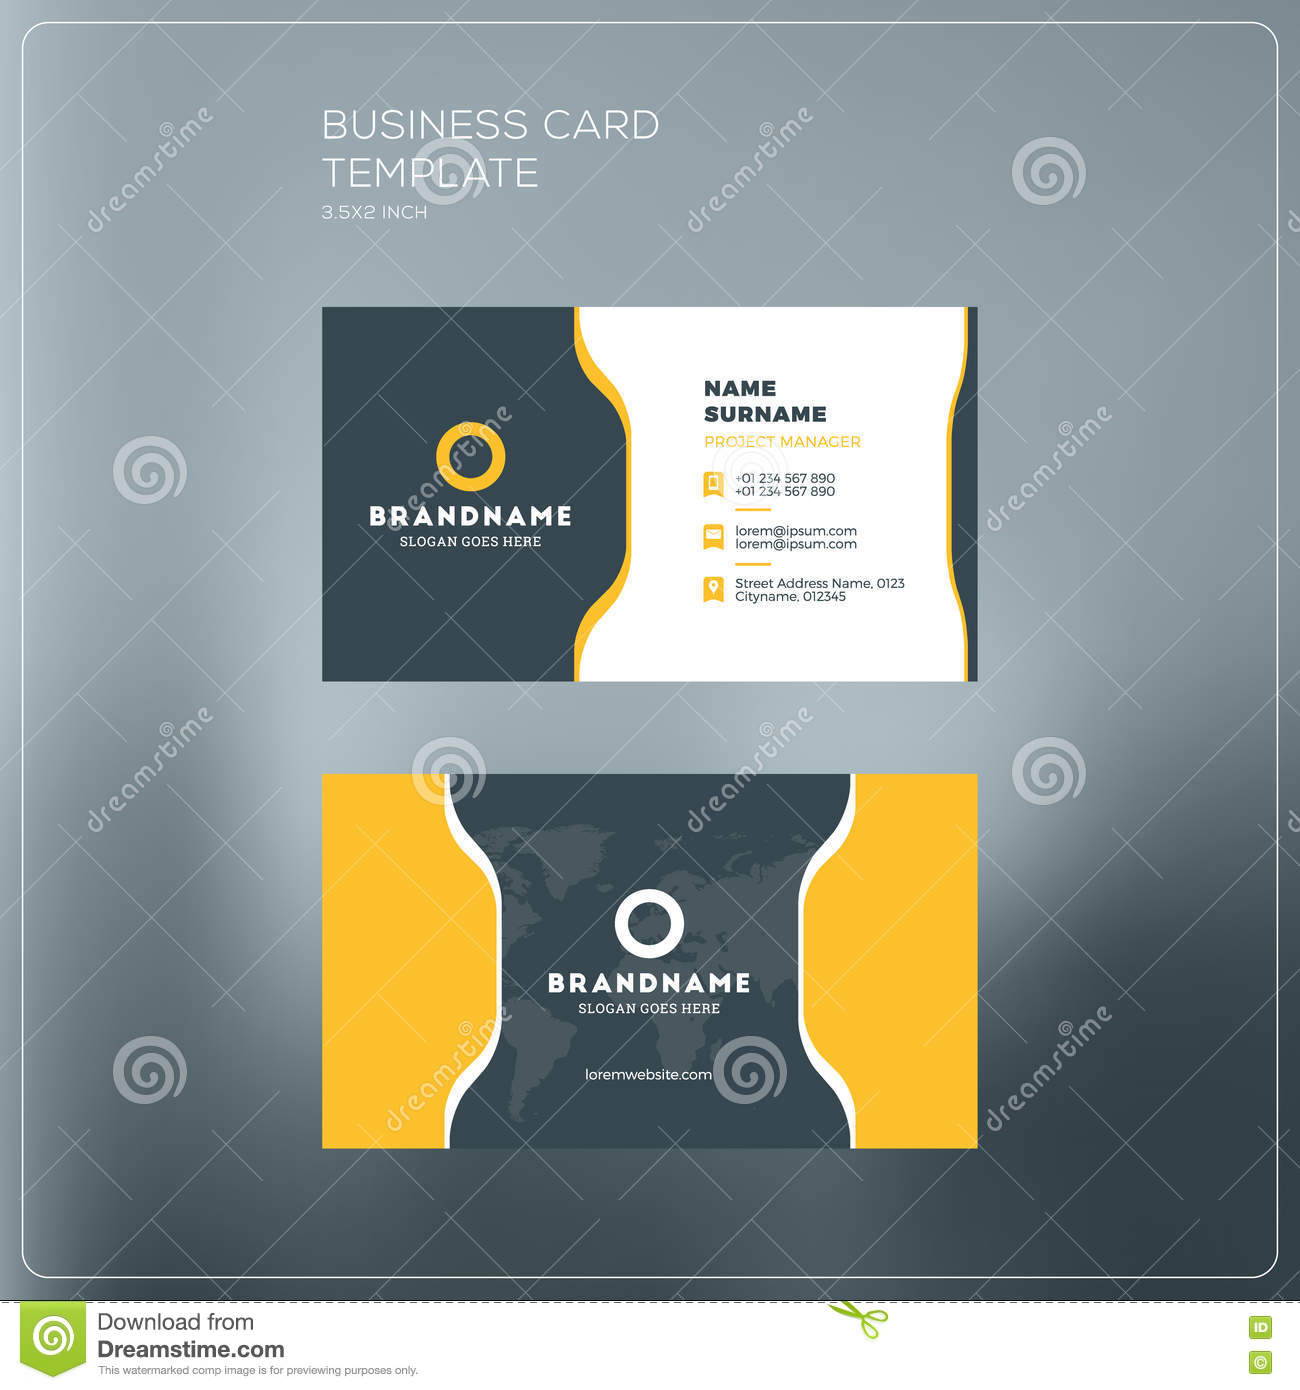 Personal business cards template vatozozdevelopment personal business cards template wajeb Gallery